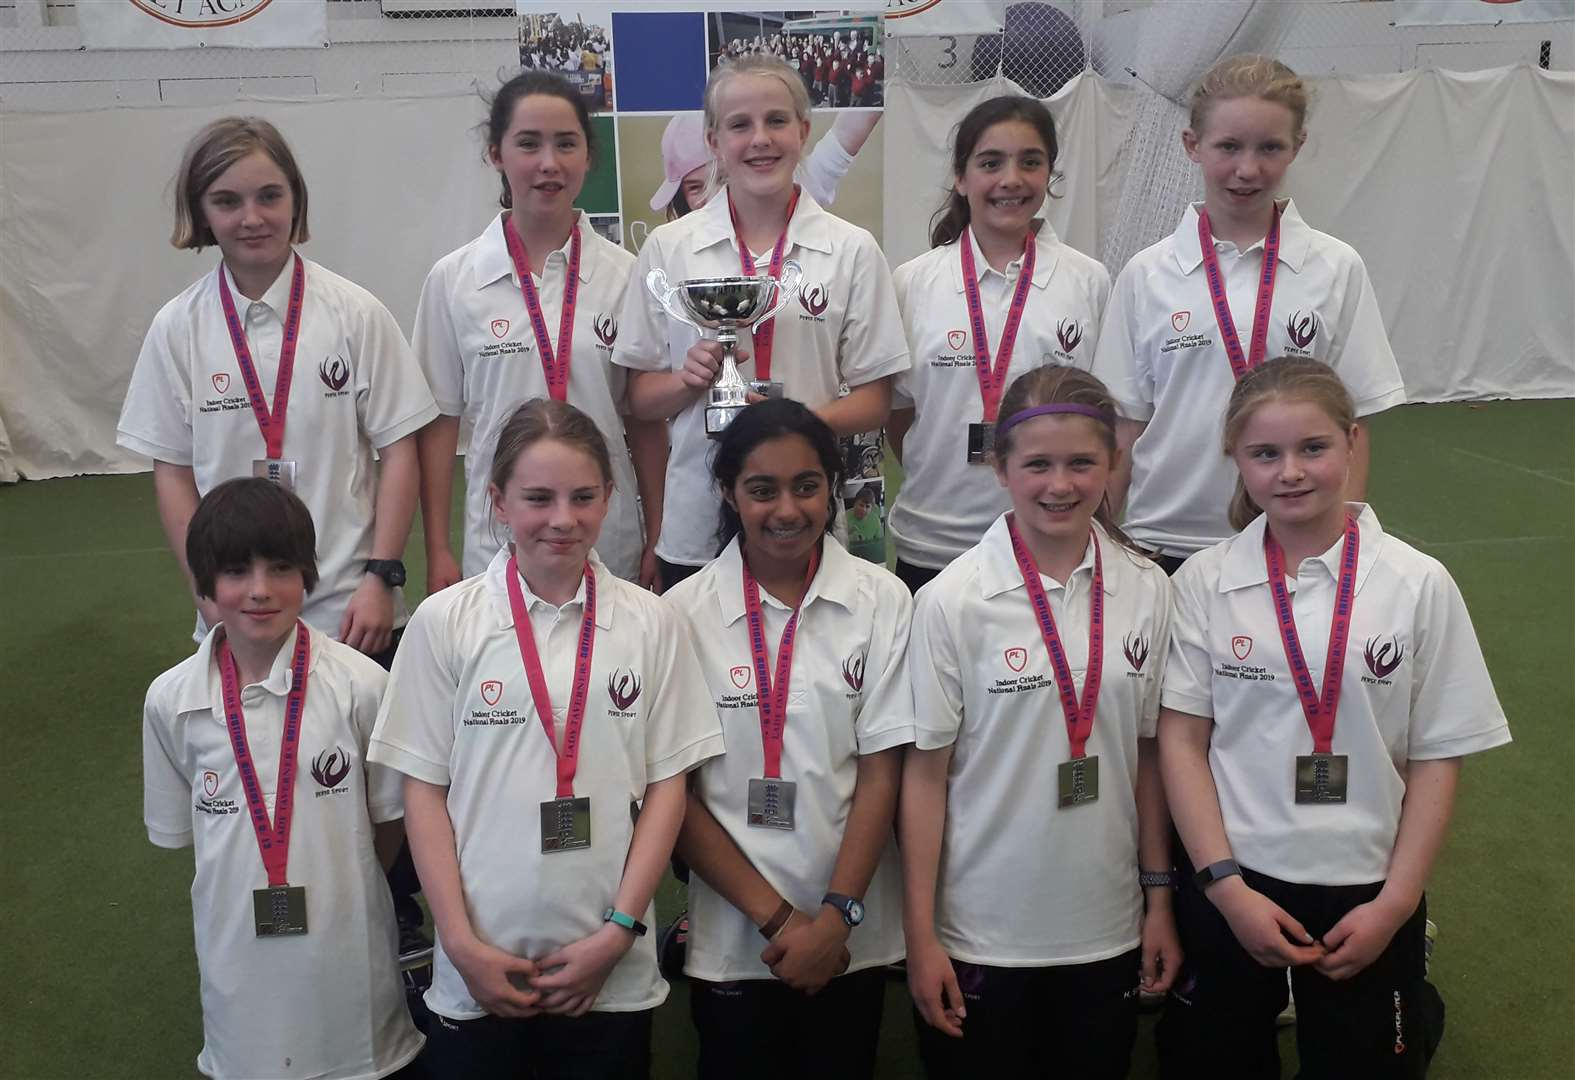 The Perse School make big impression at Lady Taverners' National Schools' Indoor Cricket finals